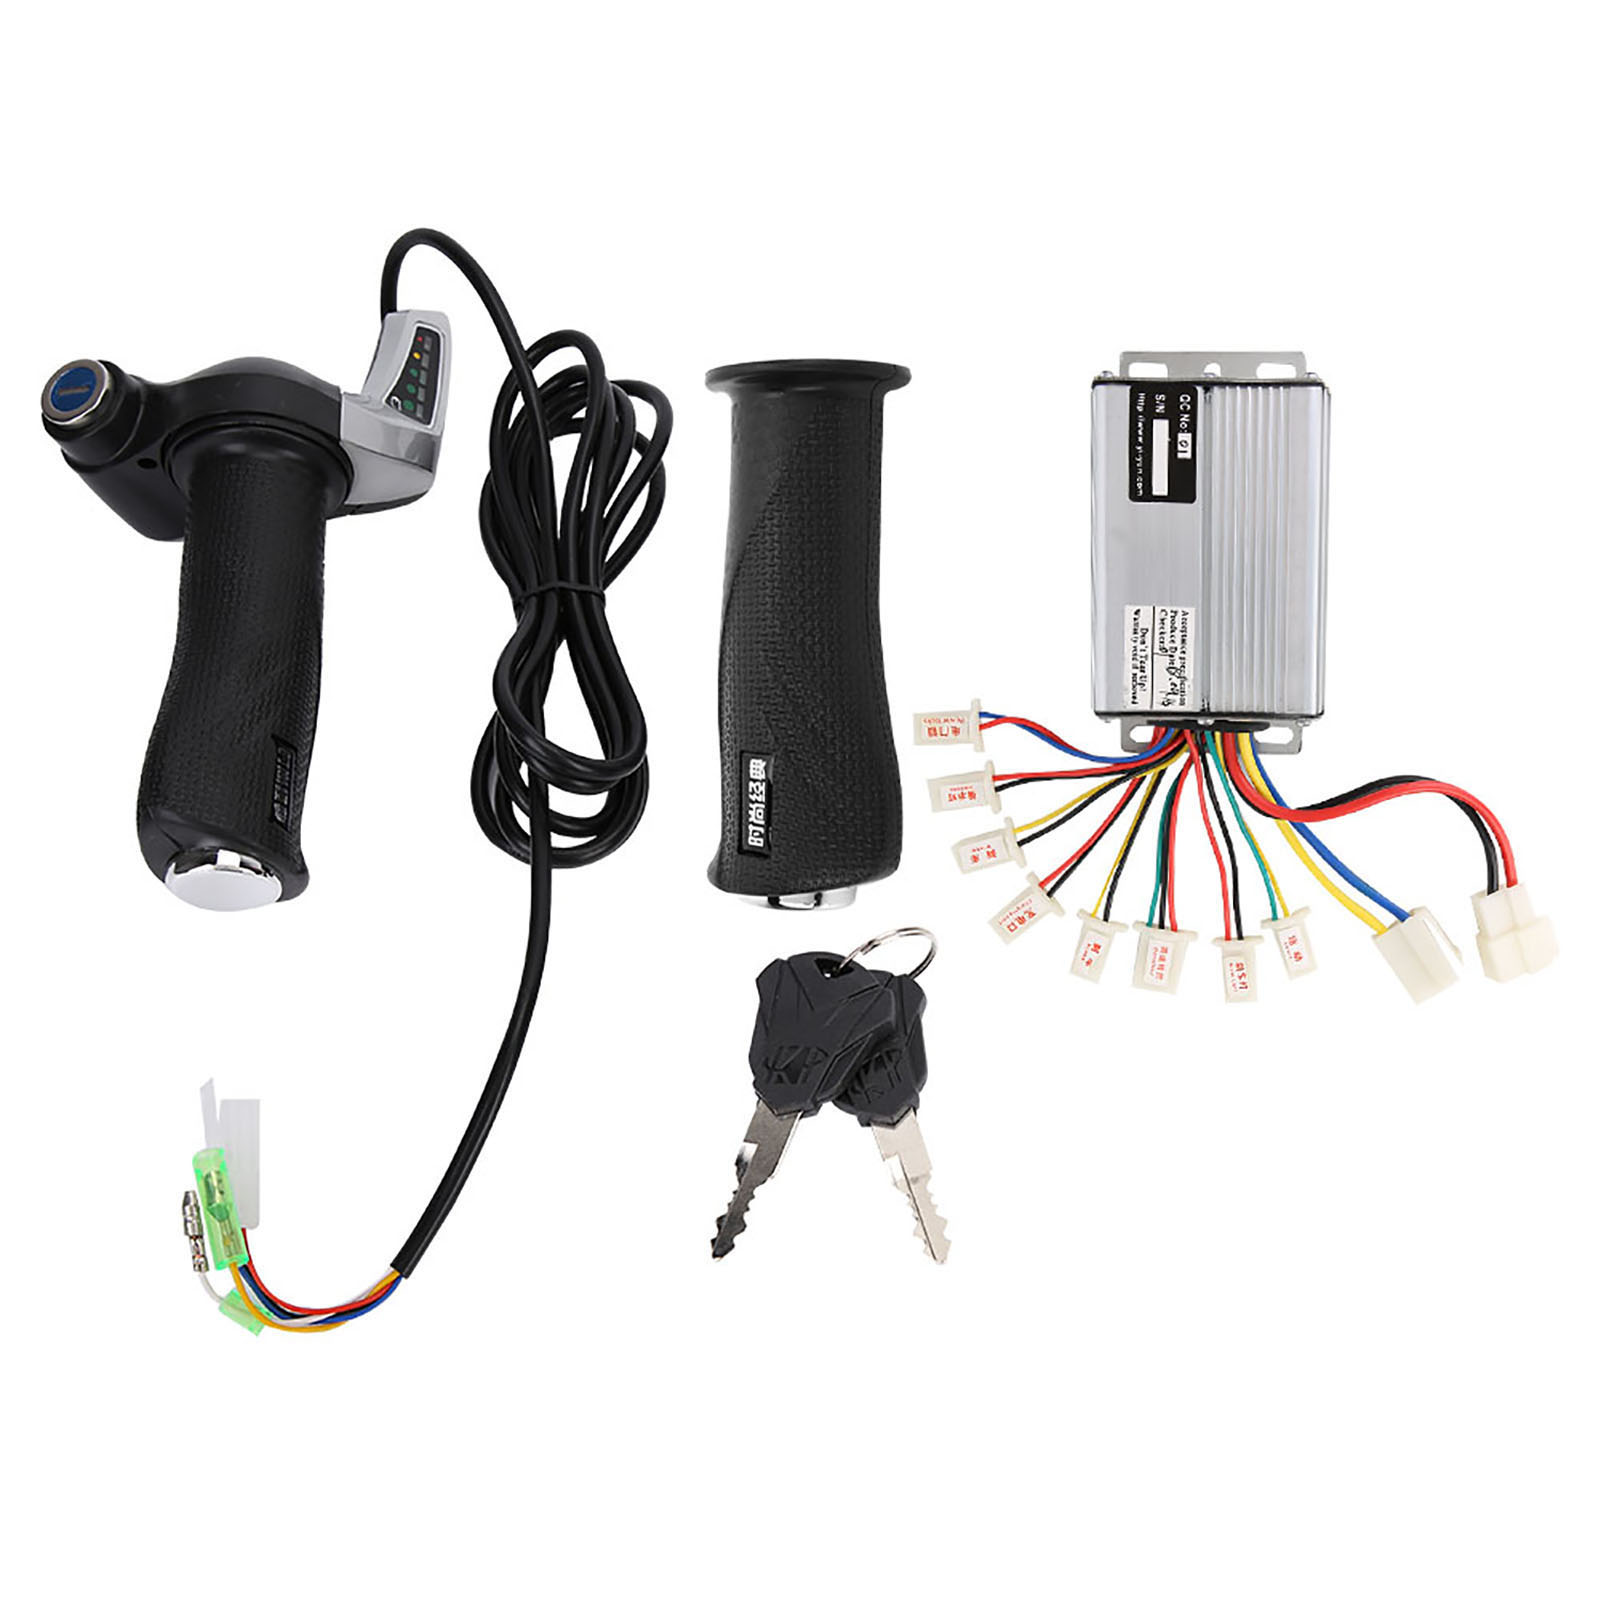 500W-1000W-Motor-Brushed-Speed-Controller-Box-for-Electric-Bicycle-amp-Scooter-Bike thumbnail 23